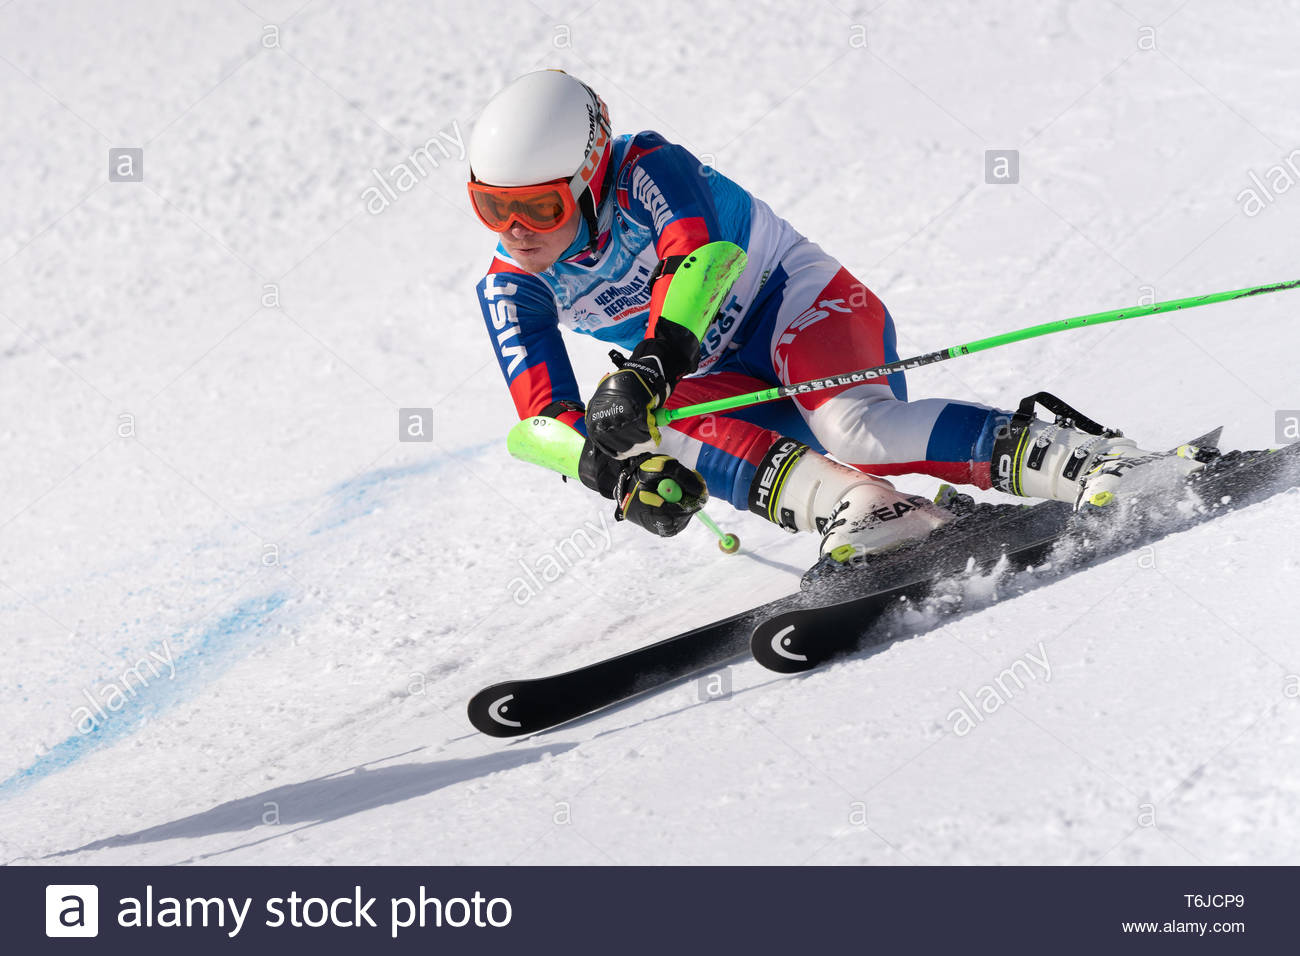 KAMCHATKA PENINSULA, RUSSIA - APR 1, 2019: Russian Alpine Skiing Cup, International Ski Federation (FIS) Championship, giant slalom. Mountain skier Bu - Stock Image